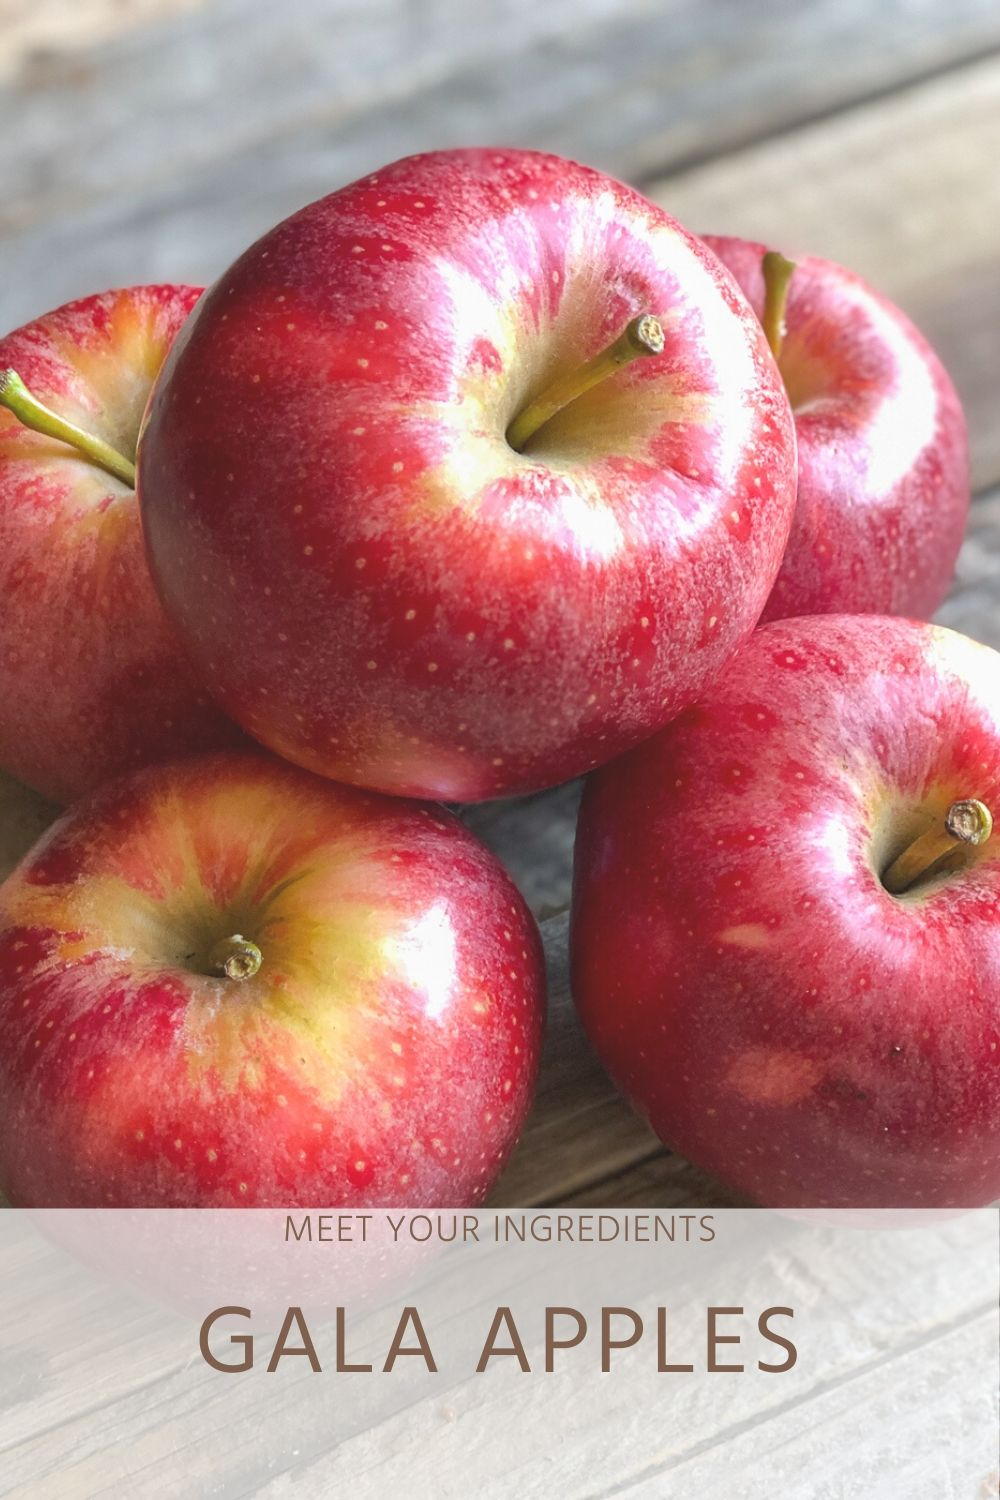 Dietitian Guide to Gala Apples